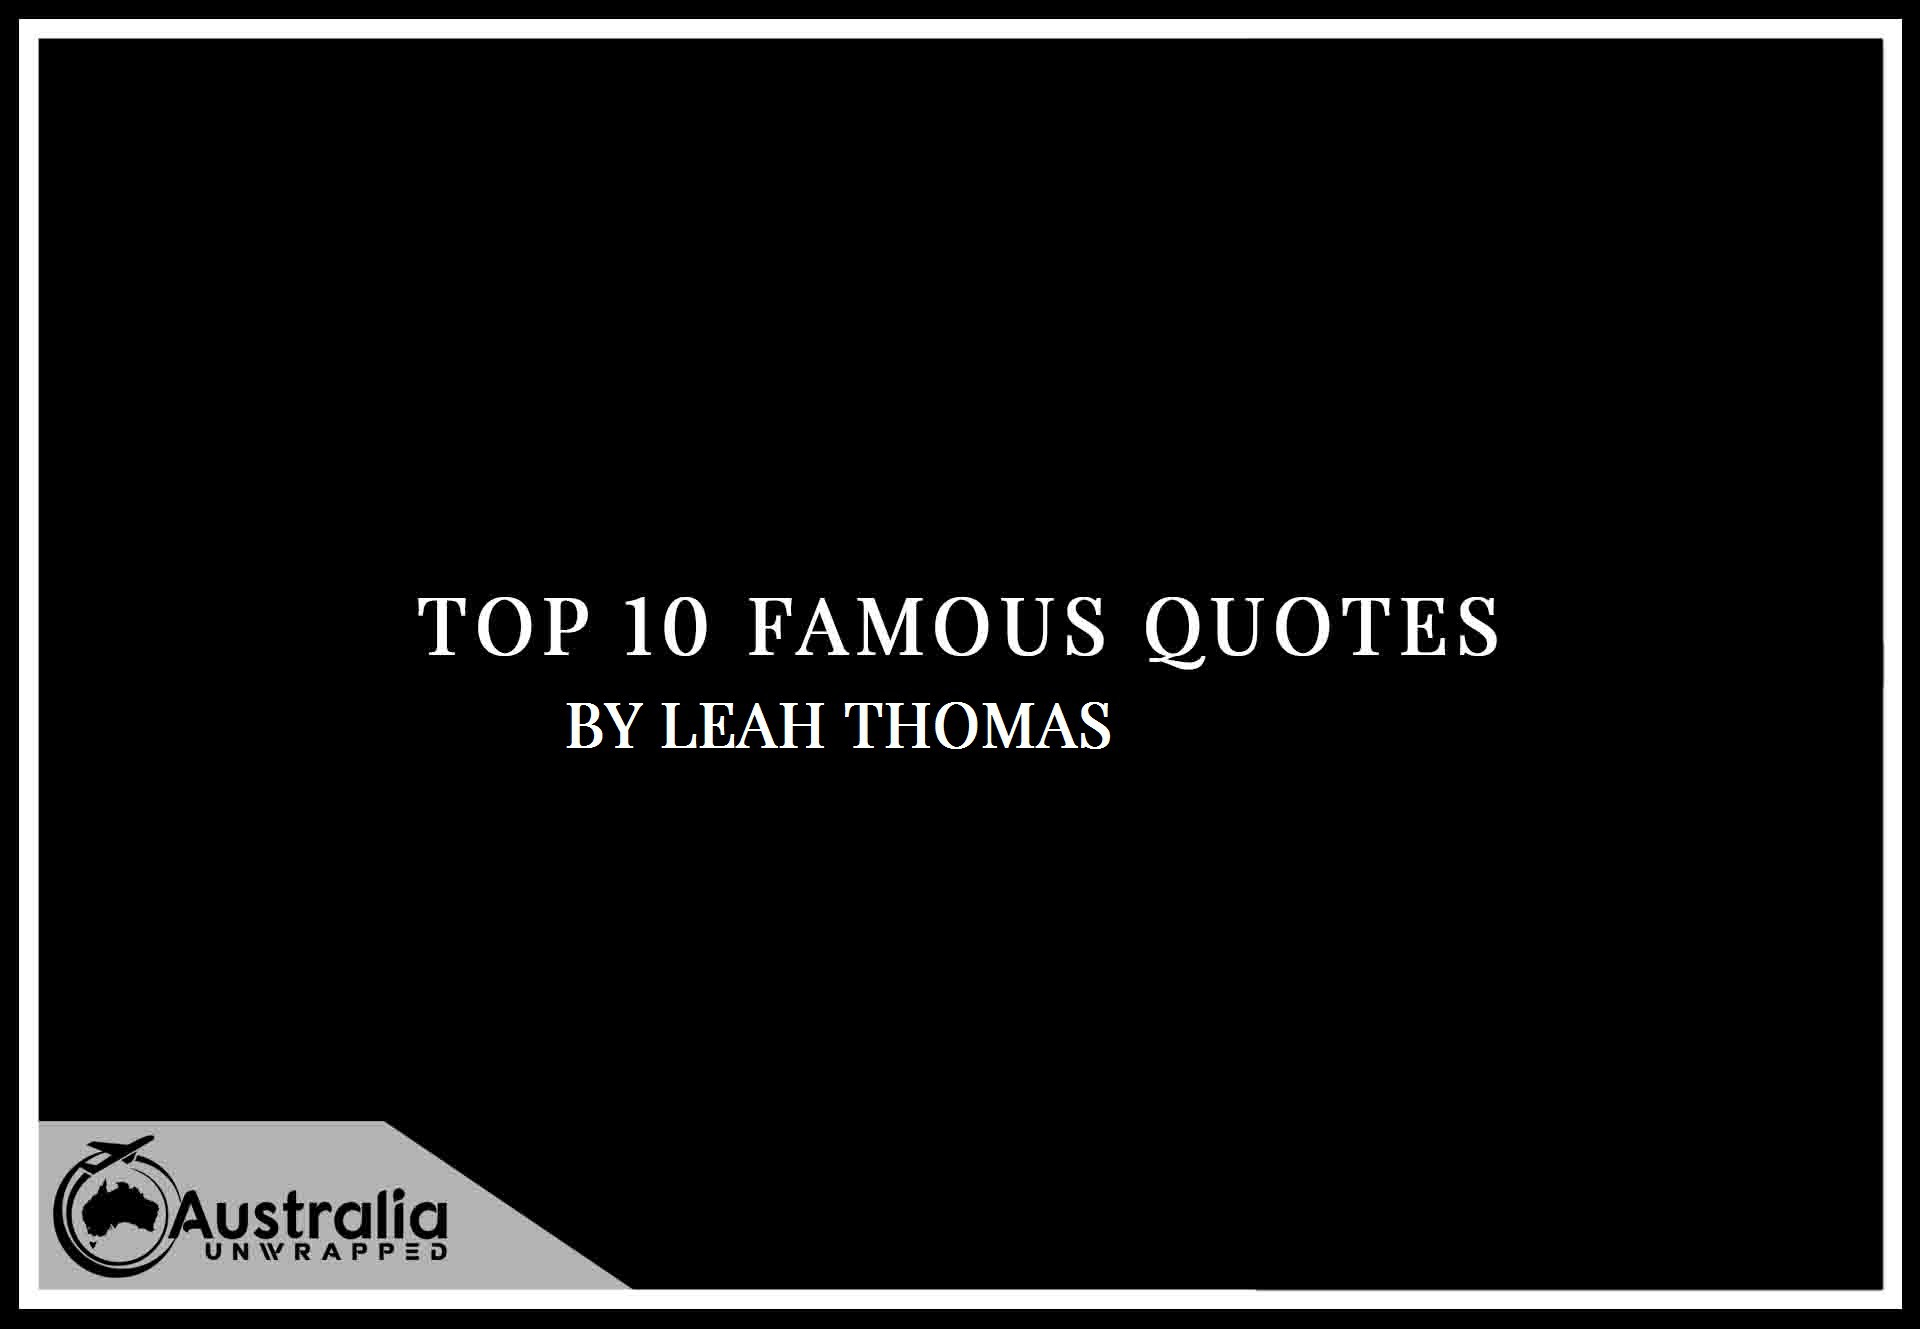 Leah Thomas's Top 10 Popular and Famous Quotes